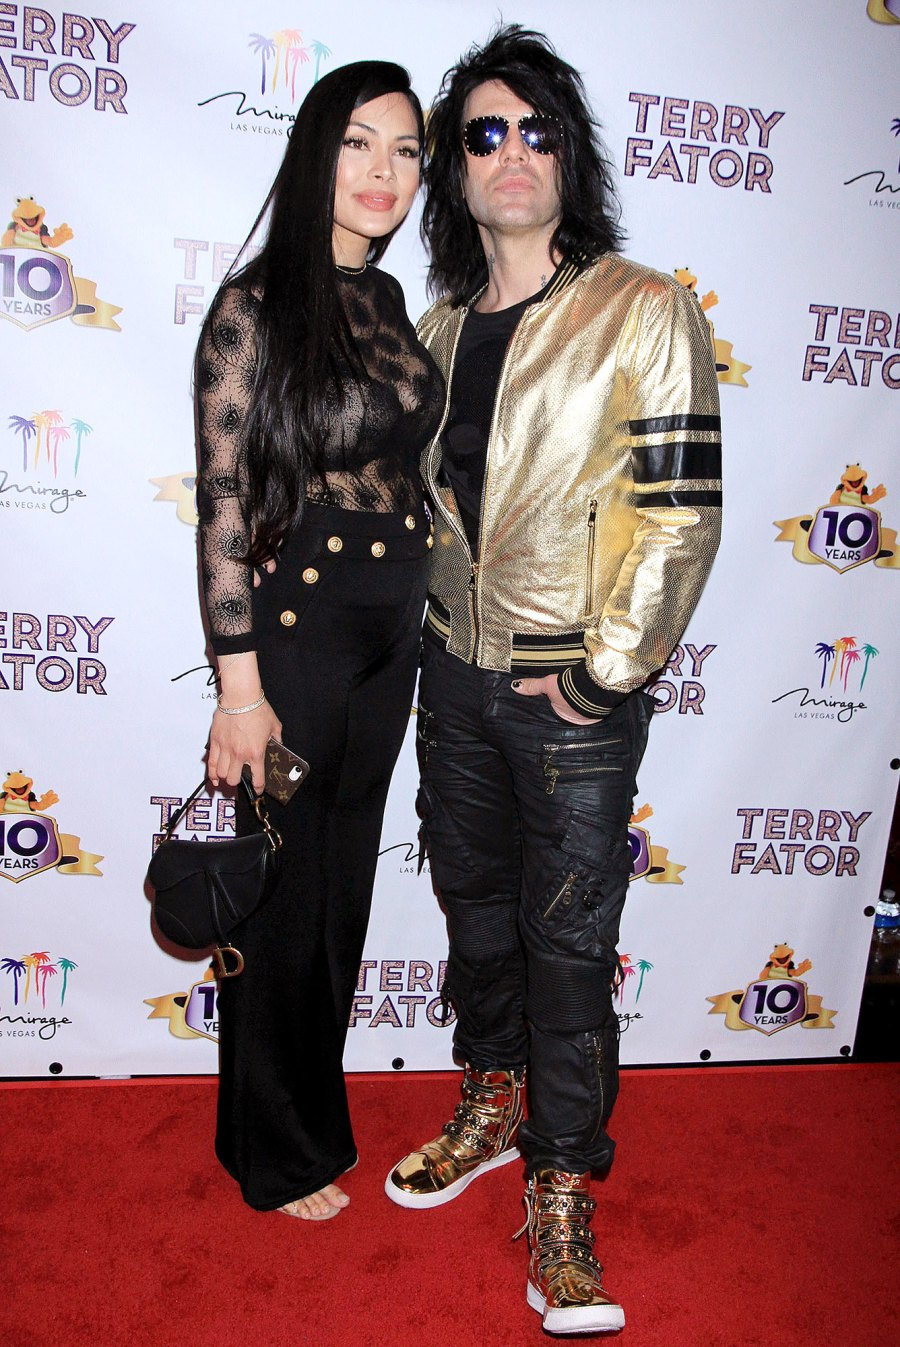 Criss Angel Wife Shaunyl Benson Is Pregnant With Unexpected 3rd Baby 2